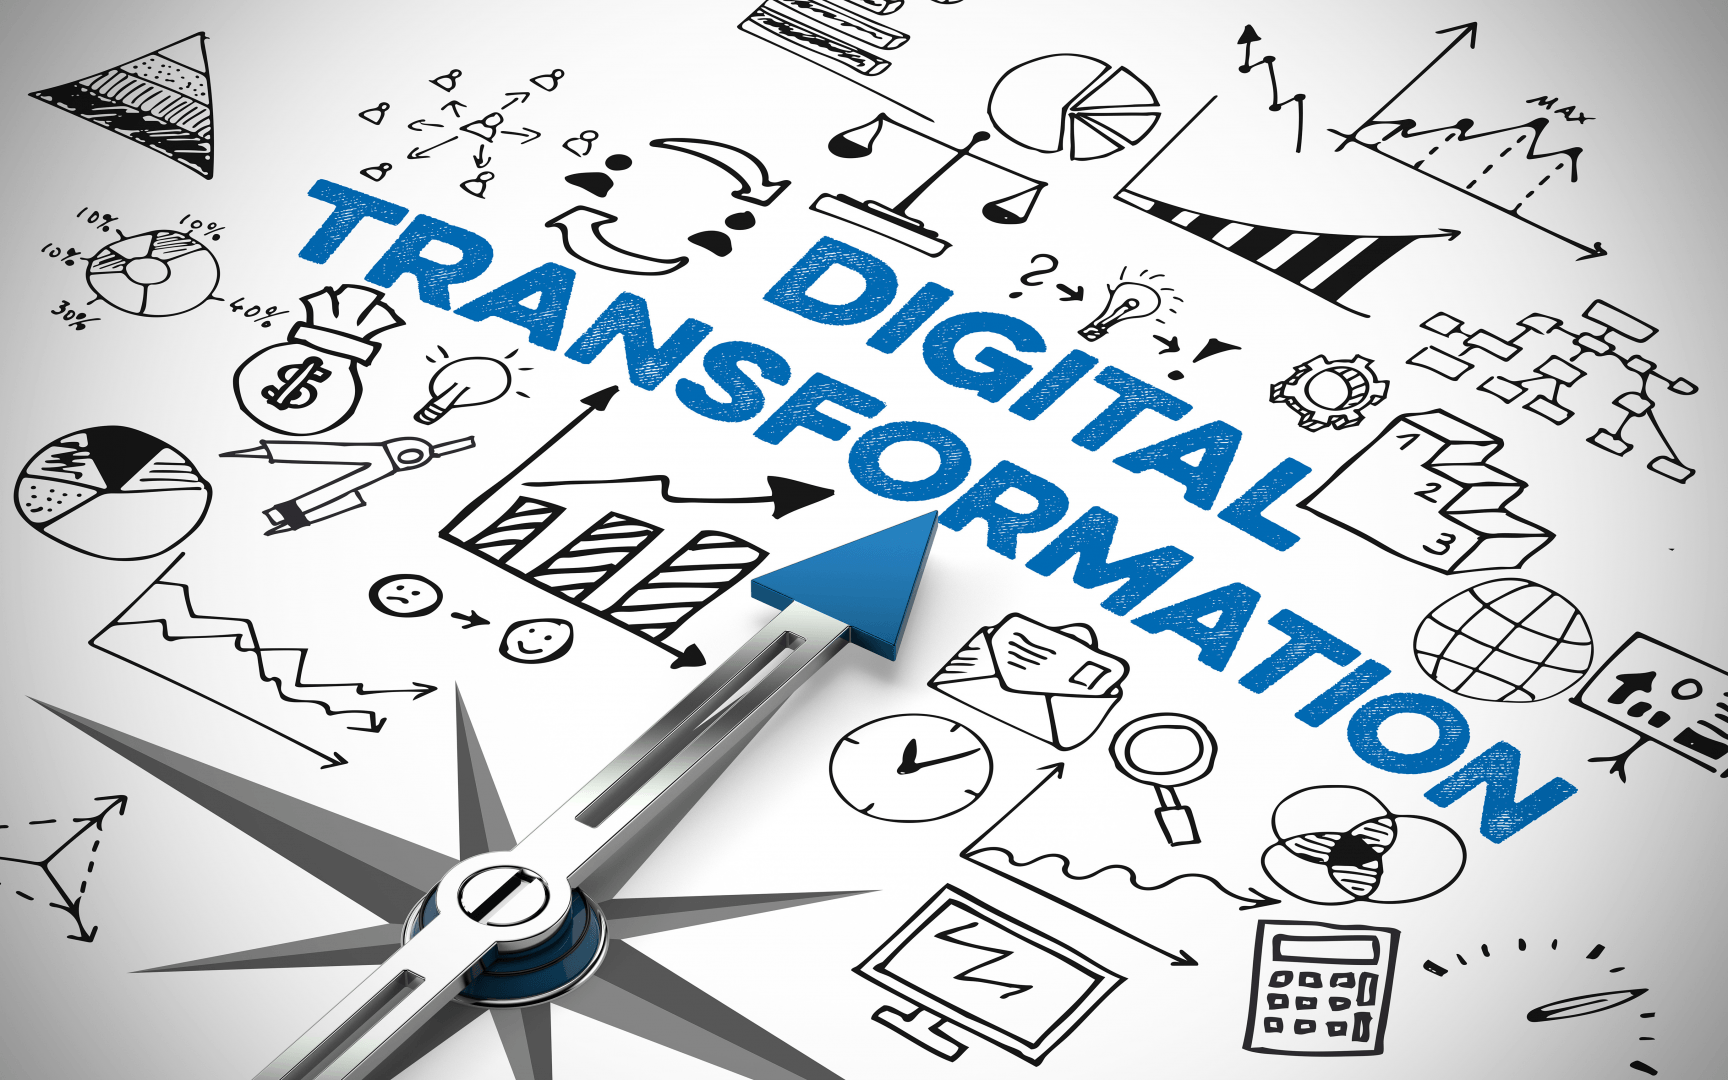 CIO Leads Digital Transformation